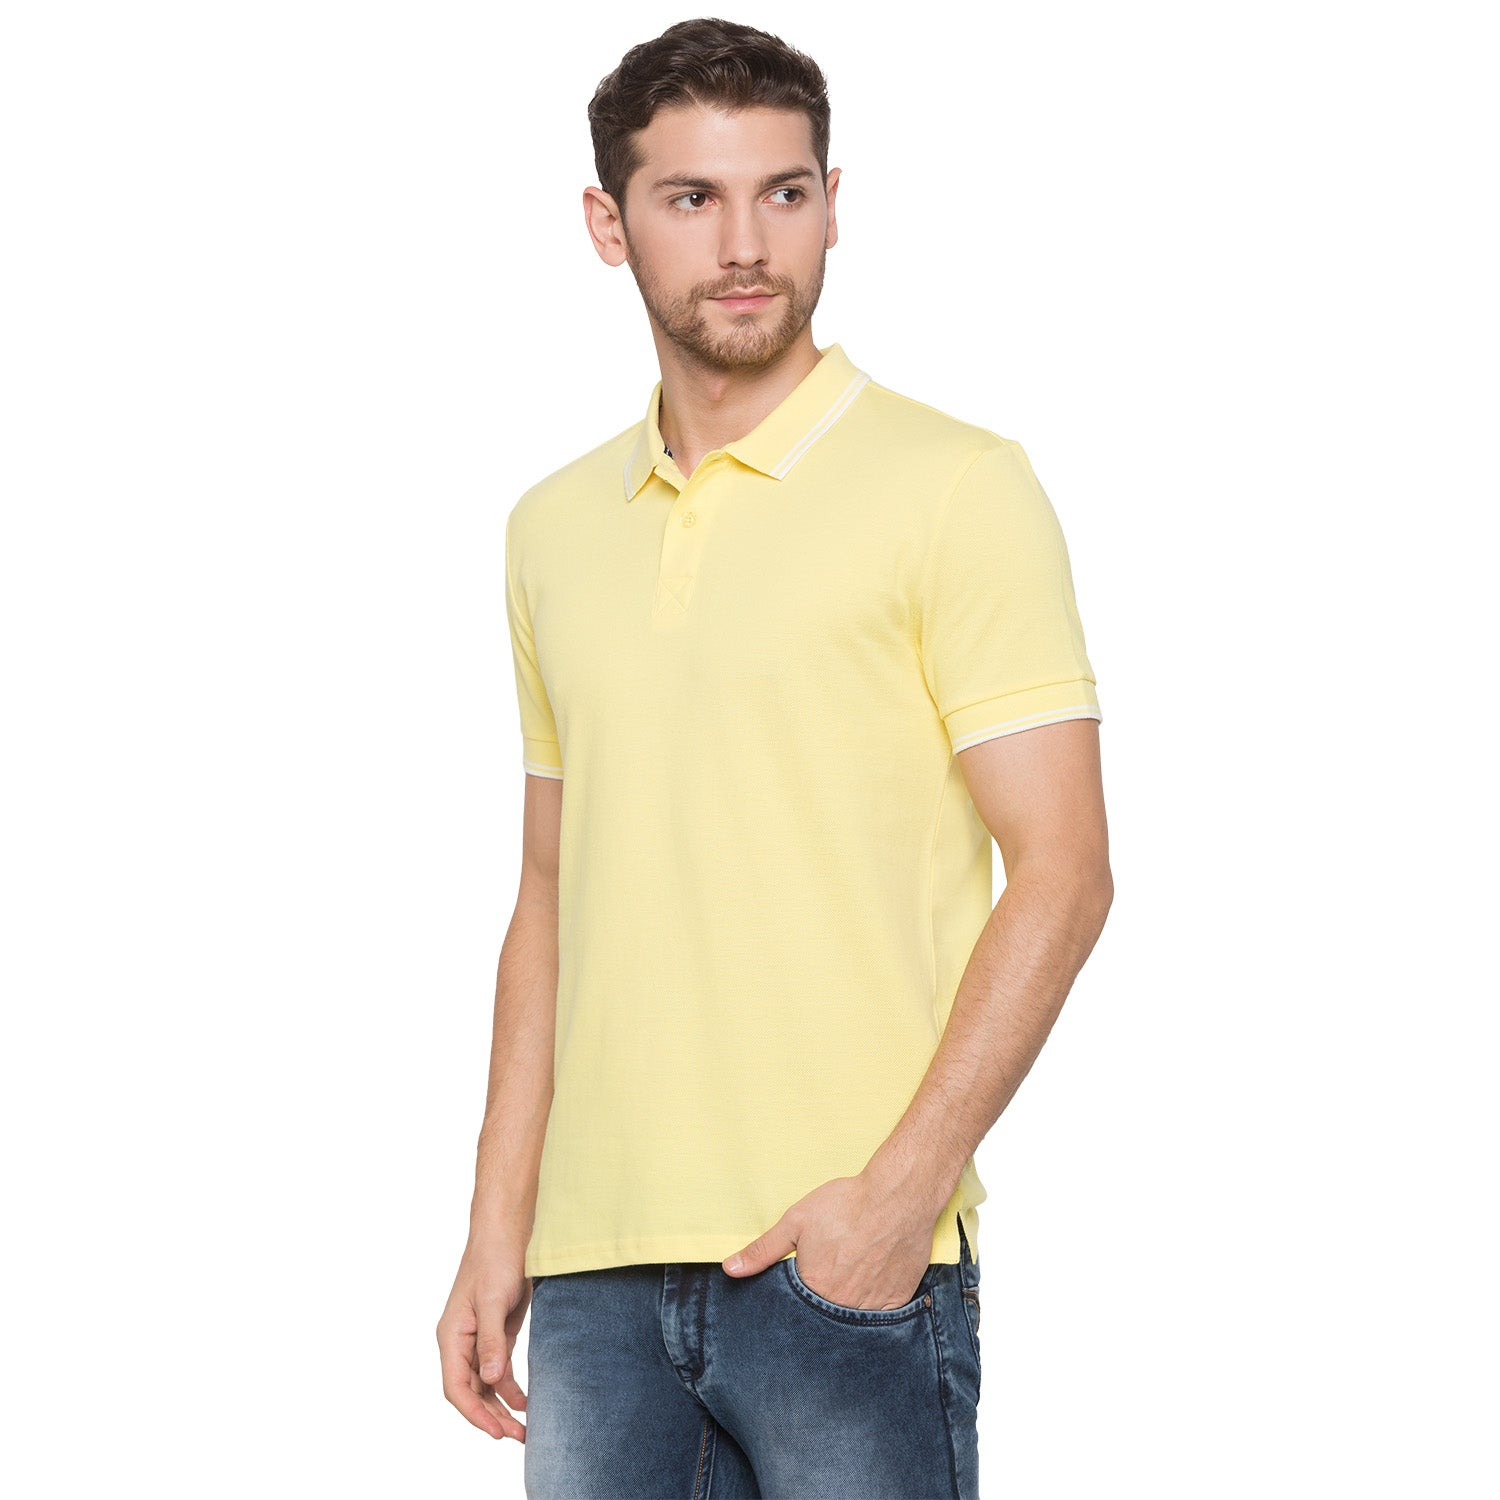 Globus Yellow Solid Polo T-Shirt2